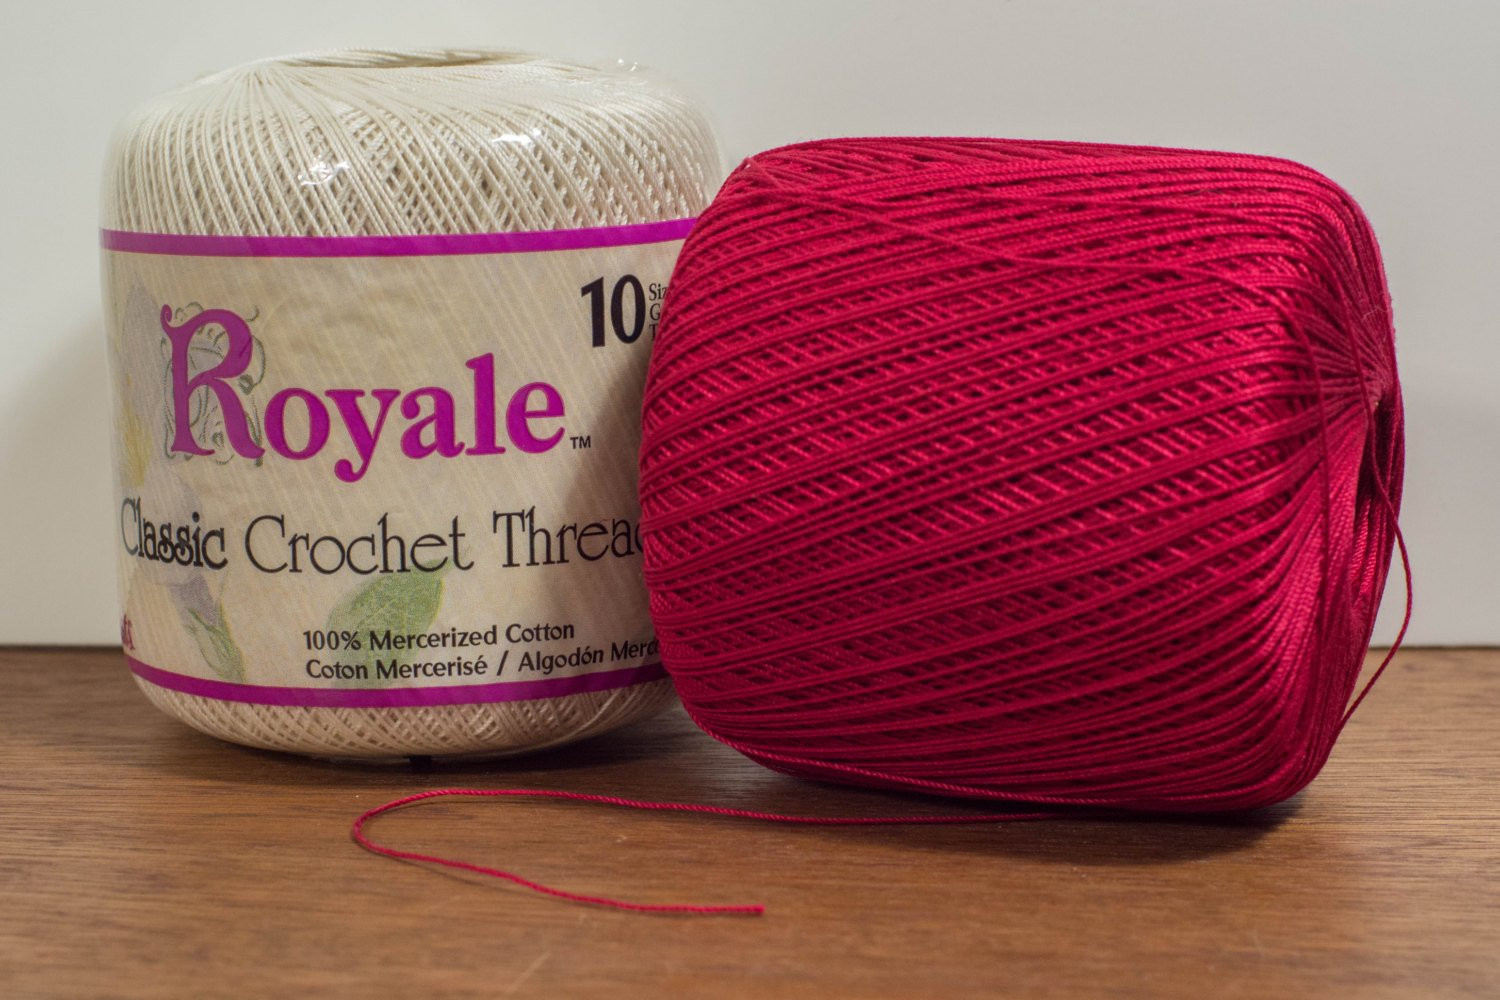 Crochet Thread Size 10 Best Of J & P Coats Royale Cotton Crochet Thread Size 10 Two Colors Of Innovative 40 Pics Crochet Thread Size 10